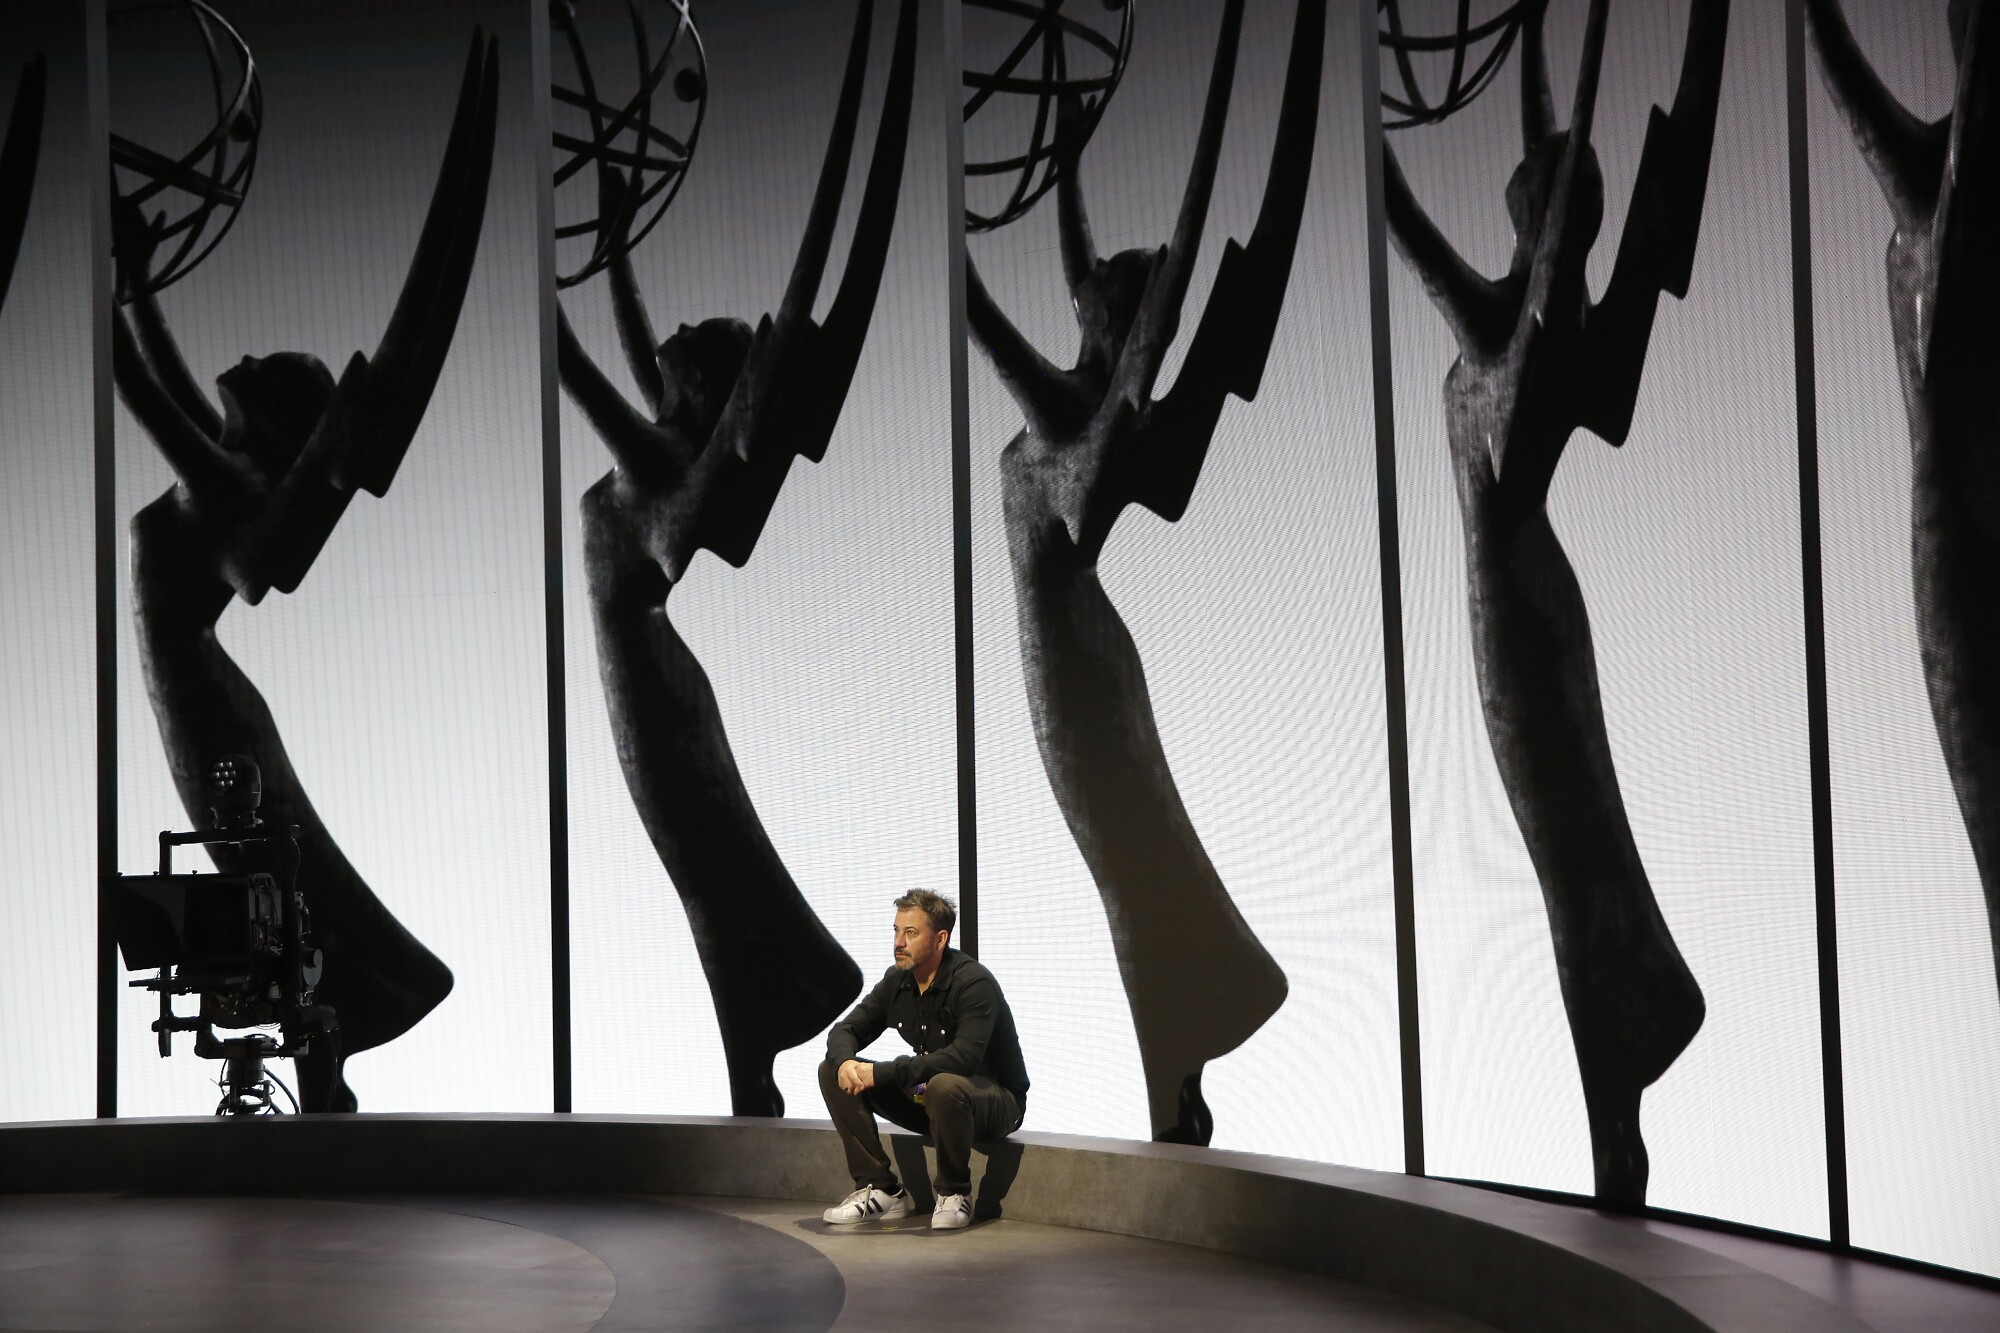 Emmy Host Jimmy Kimmel relaxes on the Emmy Awards stage.